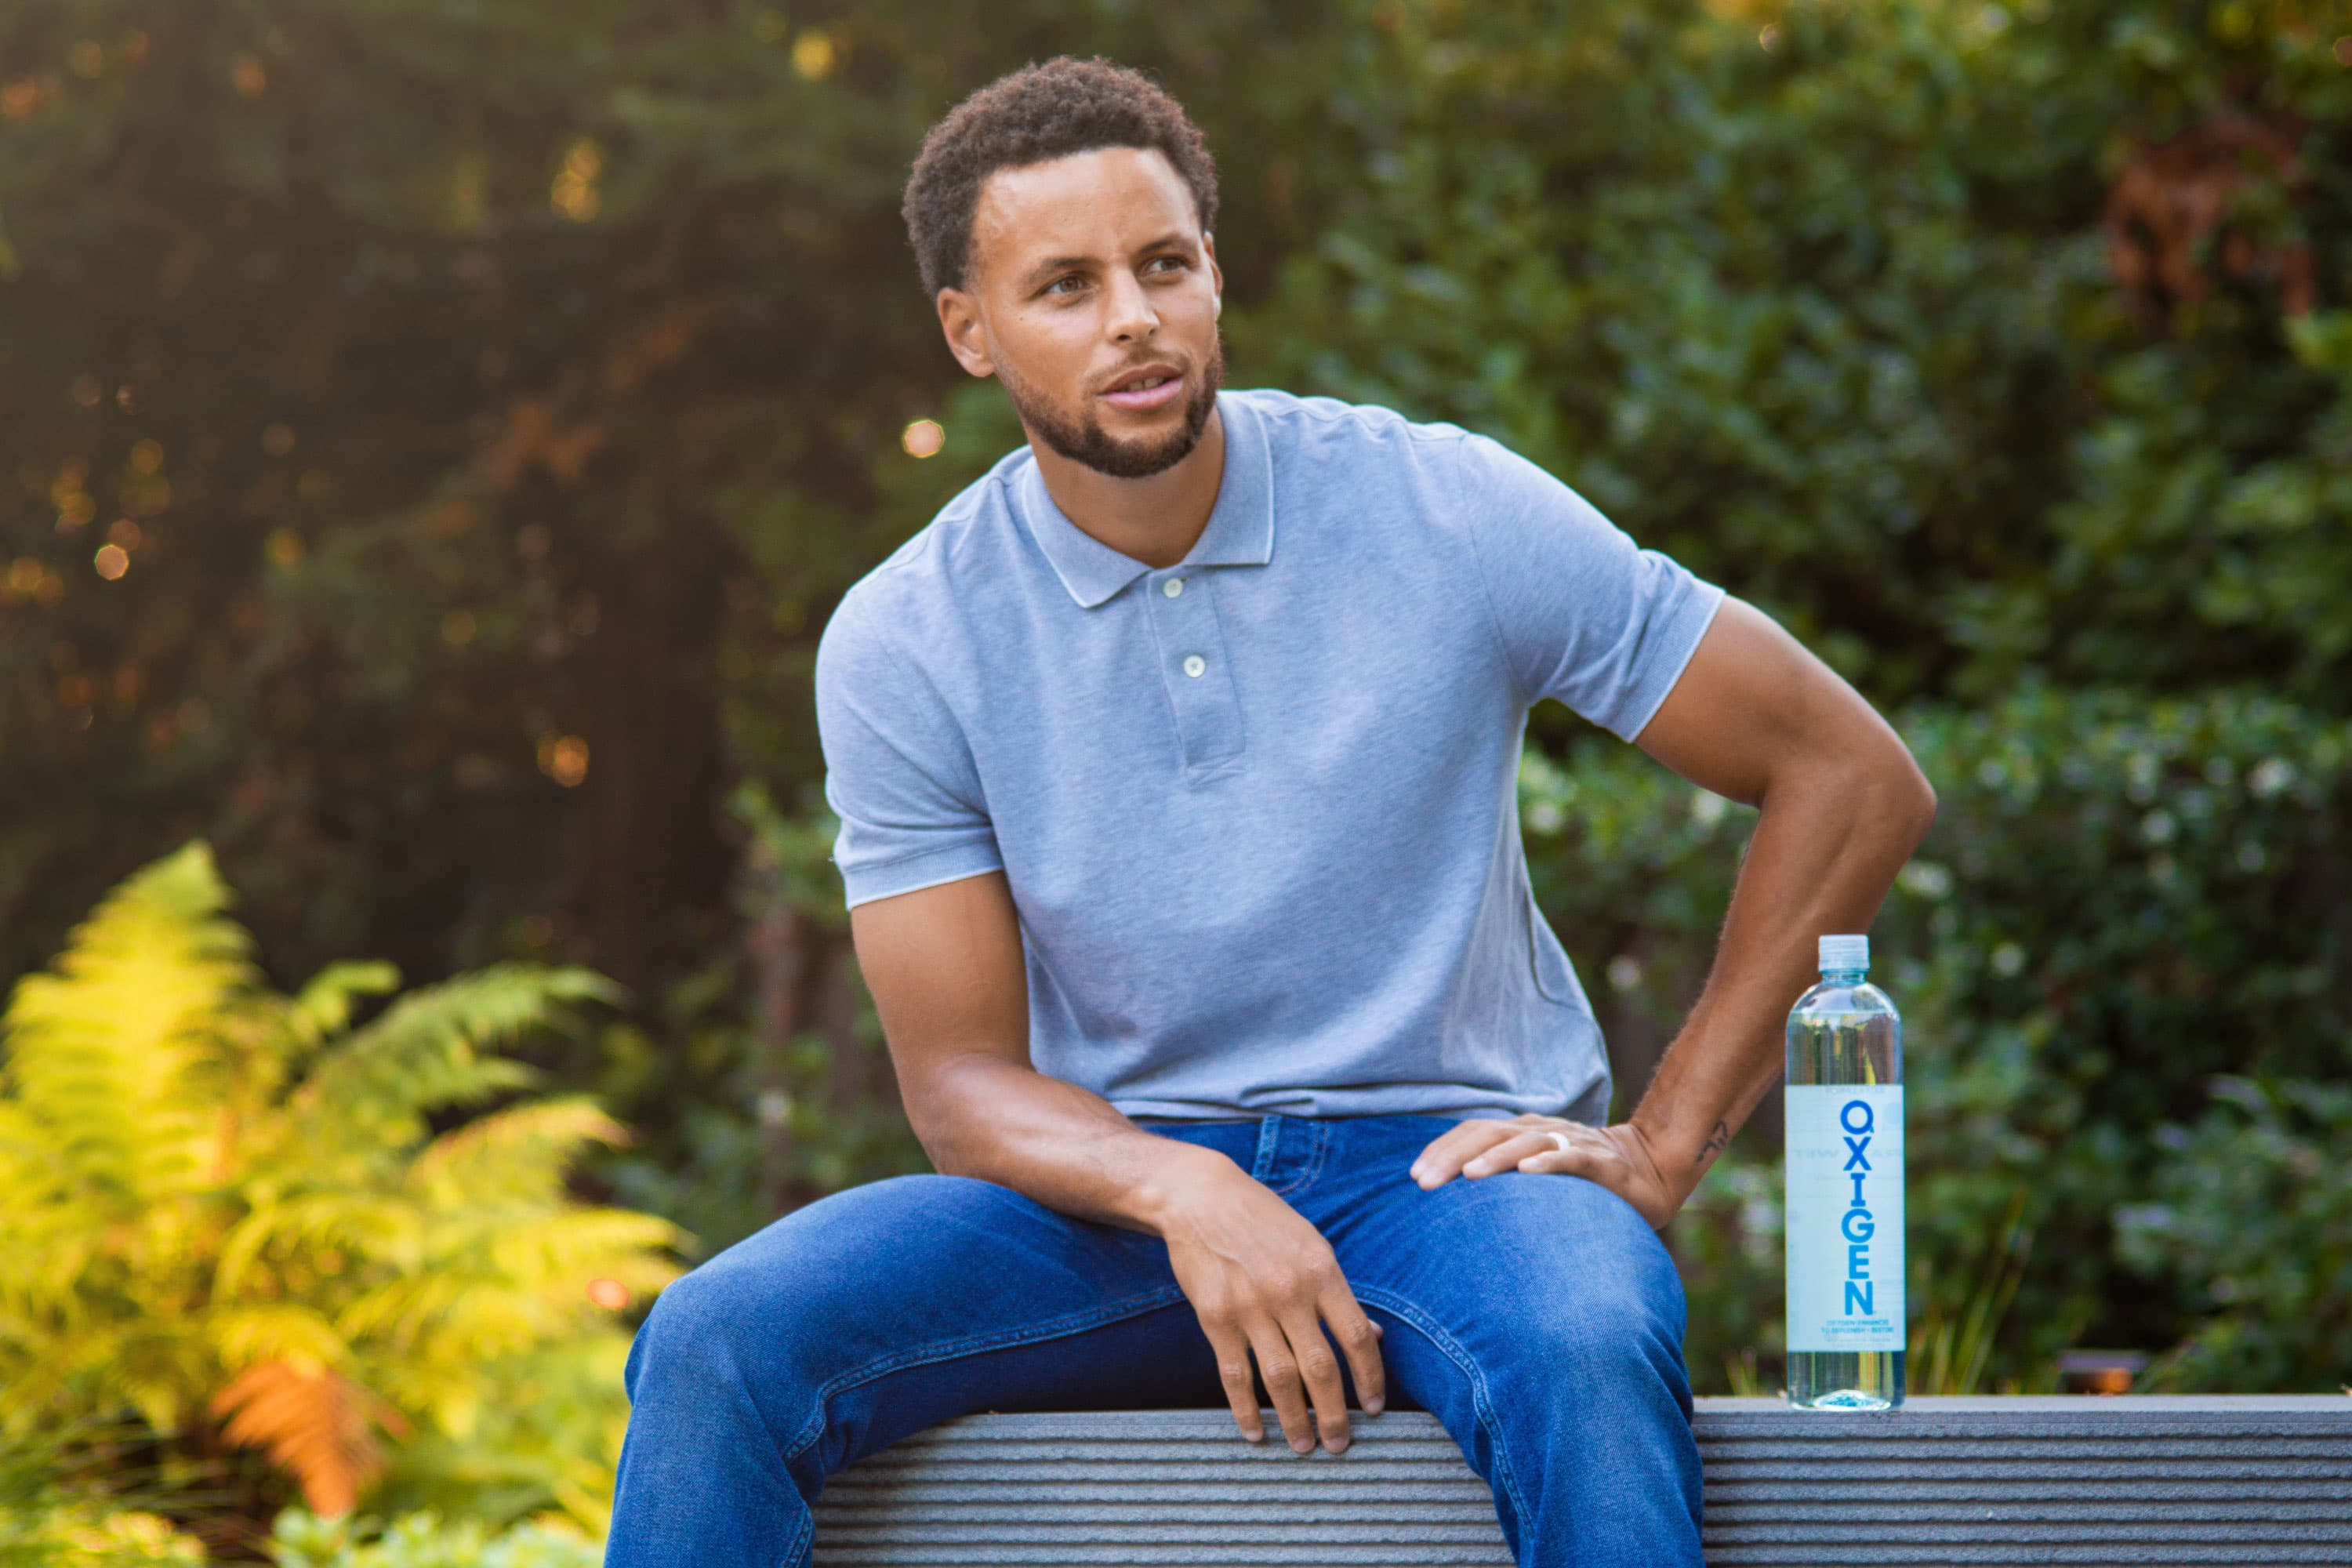 Warriors' Stephen Curry becomes equity partner in beverage company